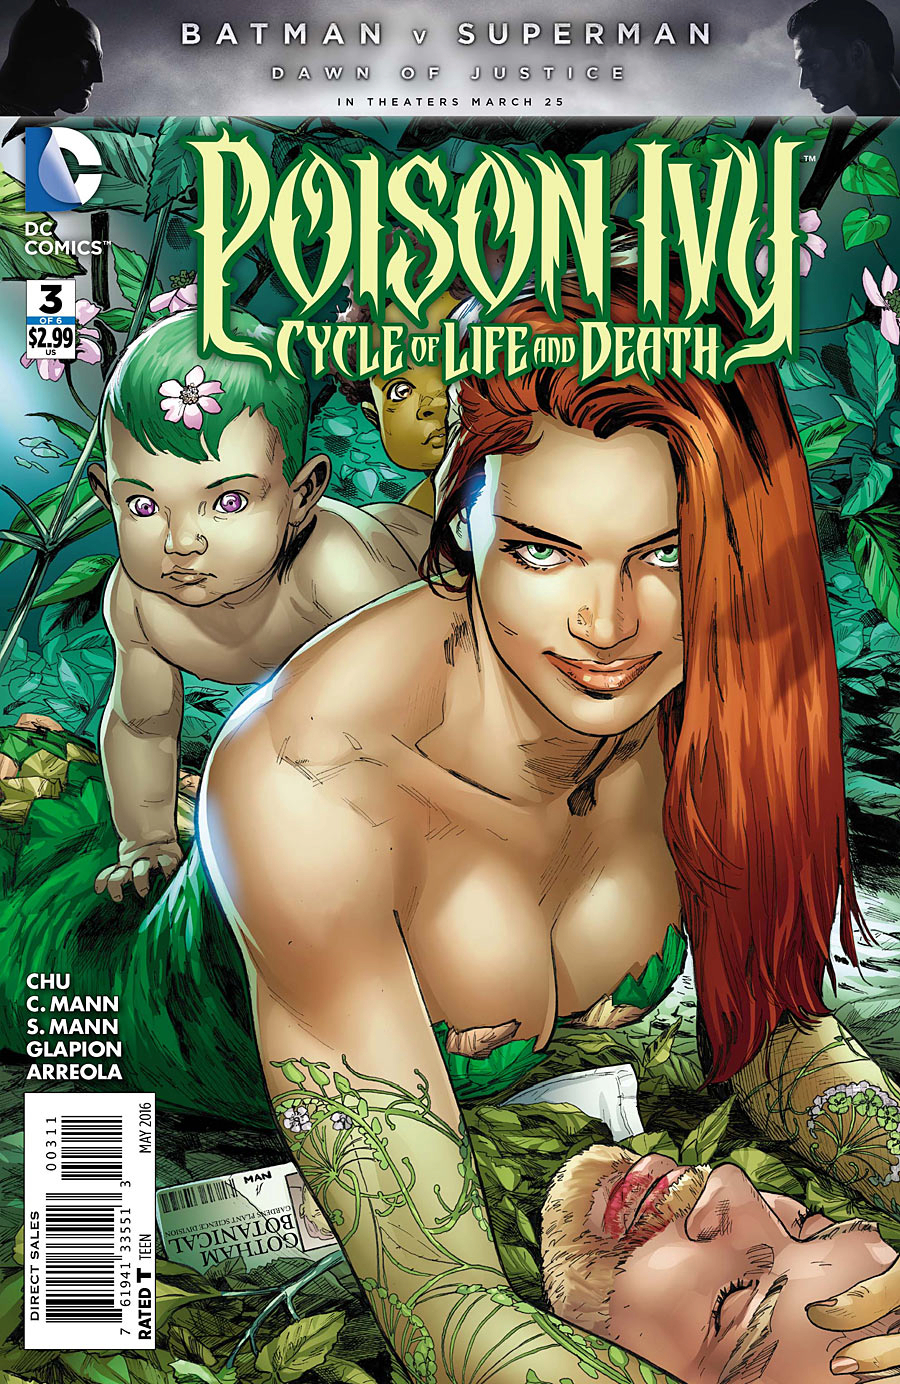 POISON IVY CYCLE OF LIFE AND DEATH #3